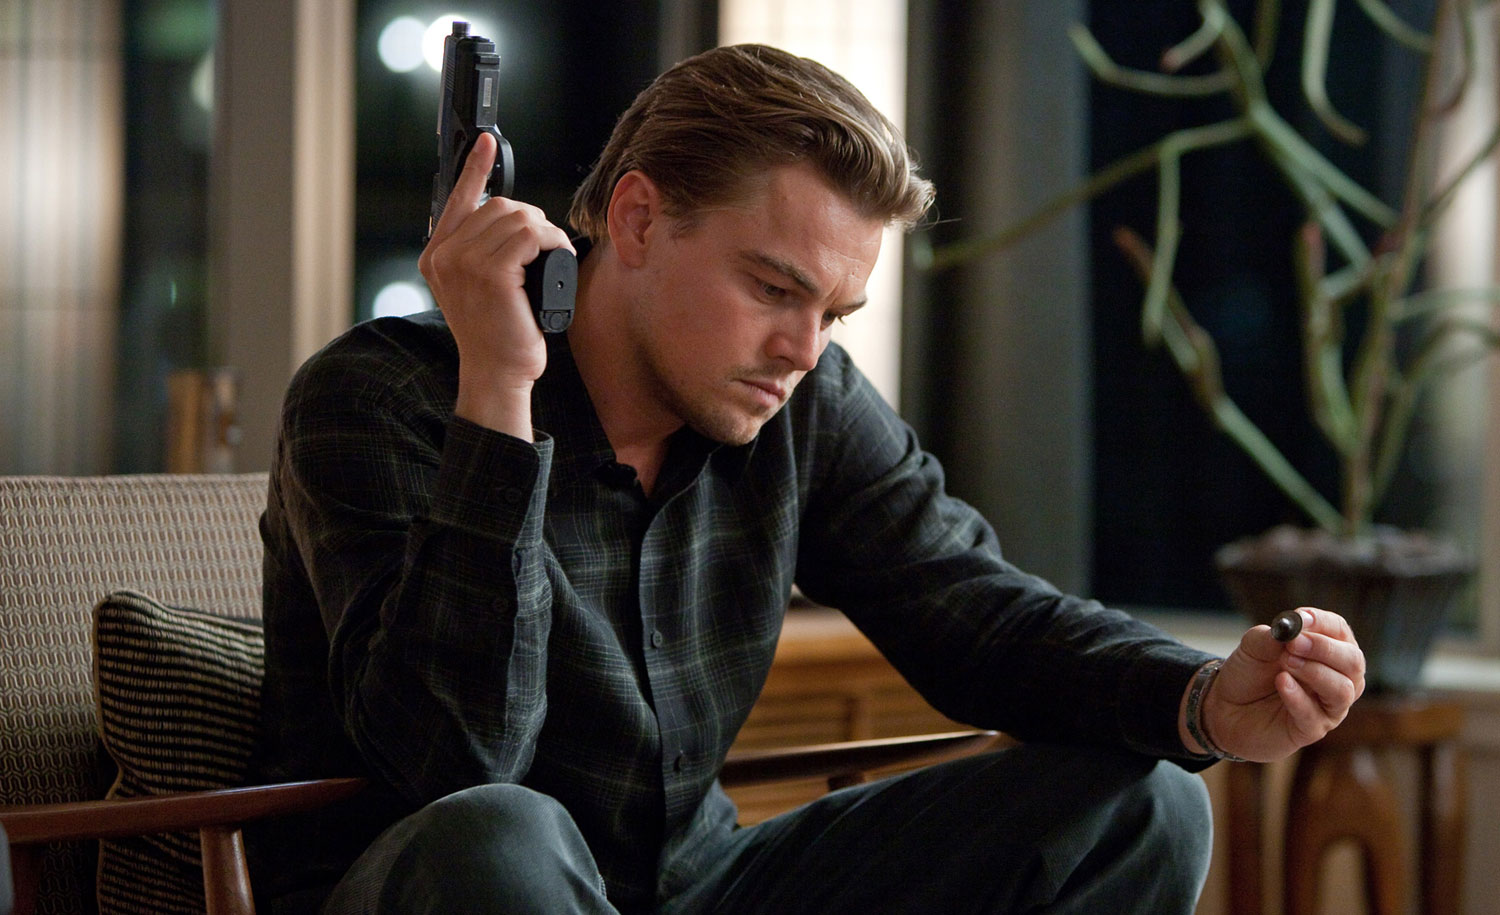 Inception has a cliffhanger ending, making a sequel plausible. Members of the cast are willing to sign on, but a sequel is unlikely at the moment. Director Christopher Nolan isn't opposed to the idea, but it's also not something he's given much thought to.